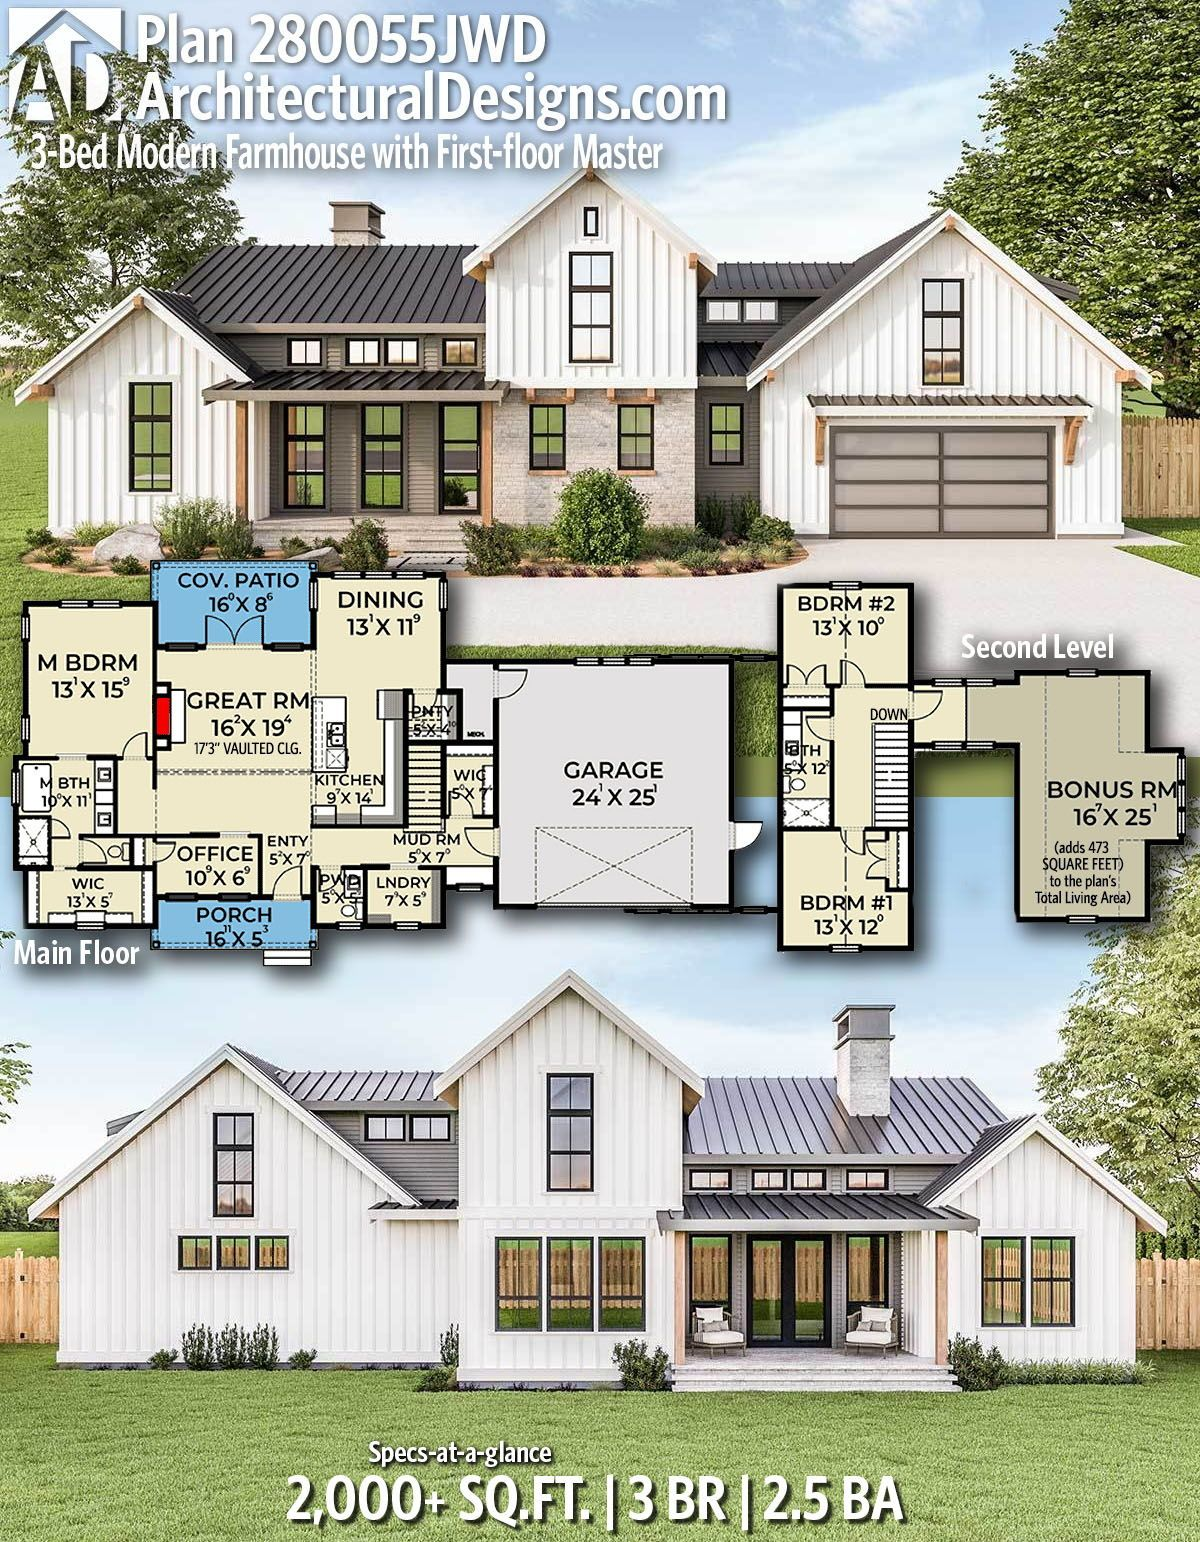 Plan 280055jwd 3 Bed Modern Farmhouse With First Floor Master House Plans Farmhouse Farmhouse Floor Plans Modern Farmhouse Plans